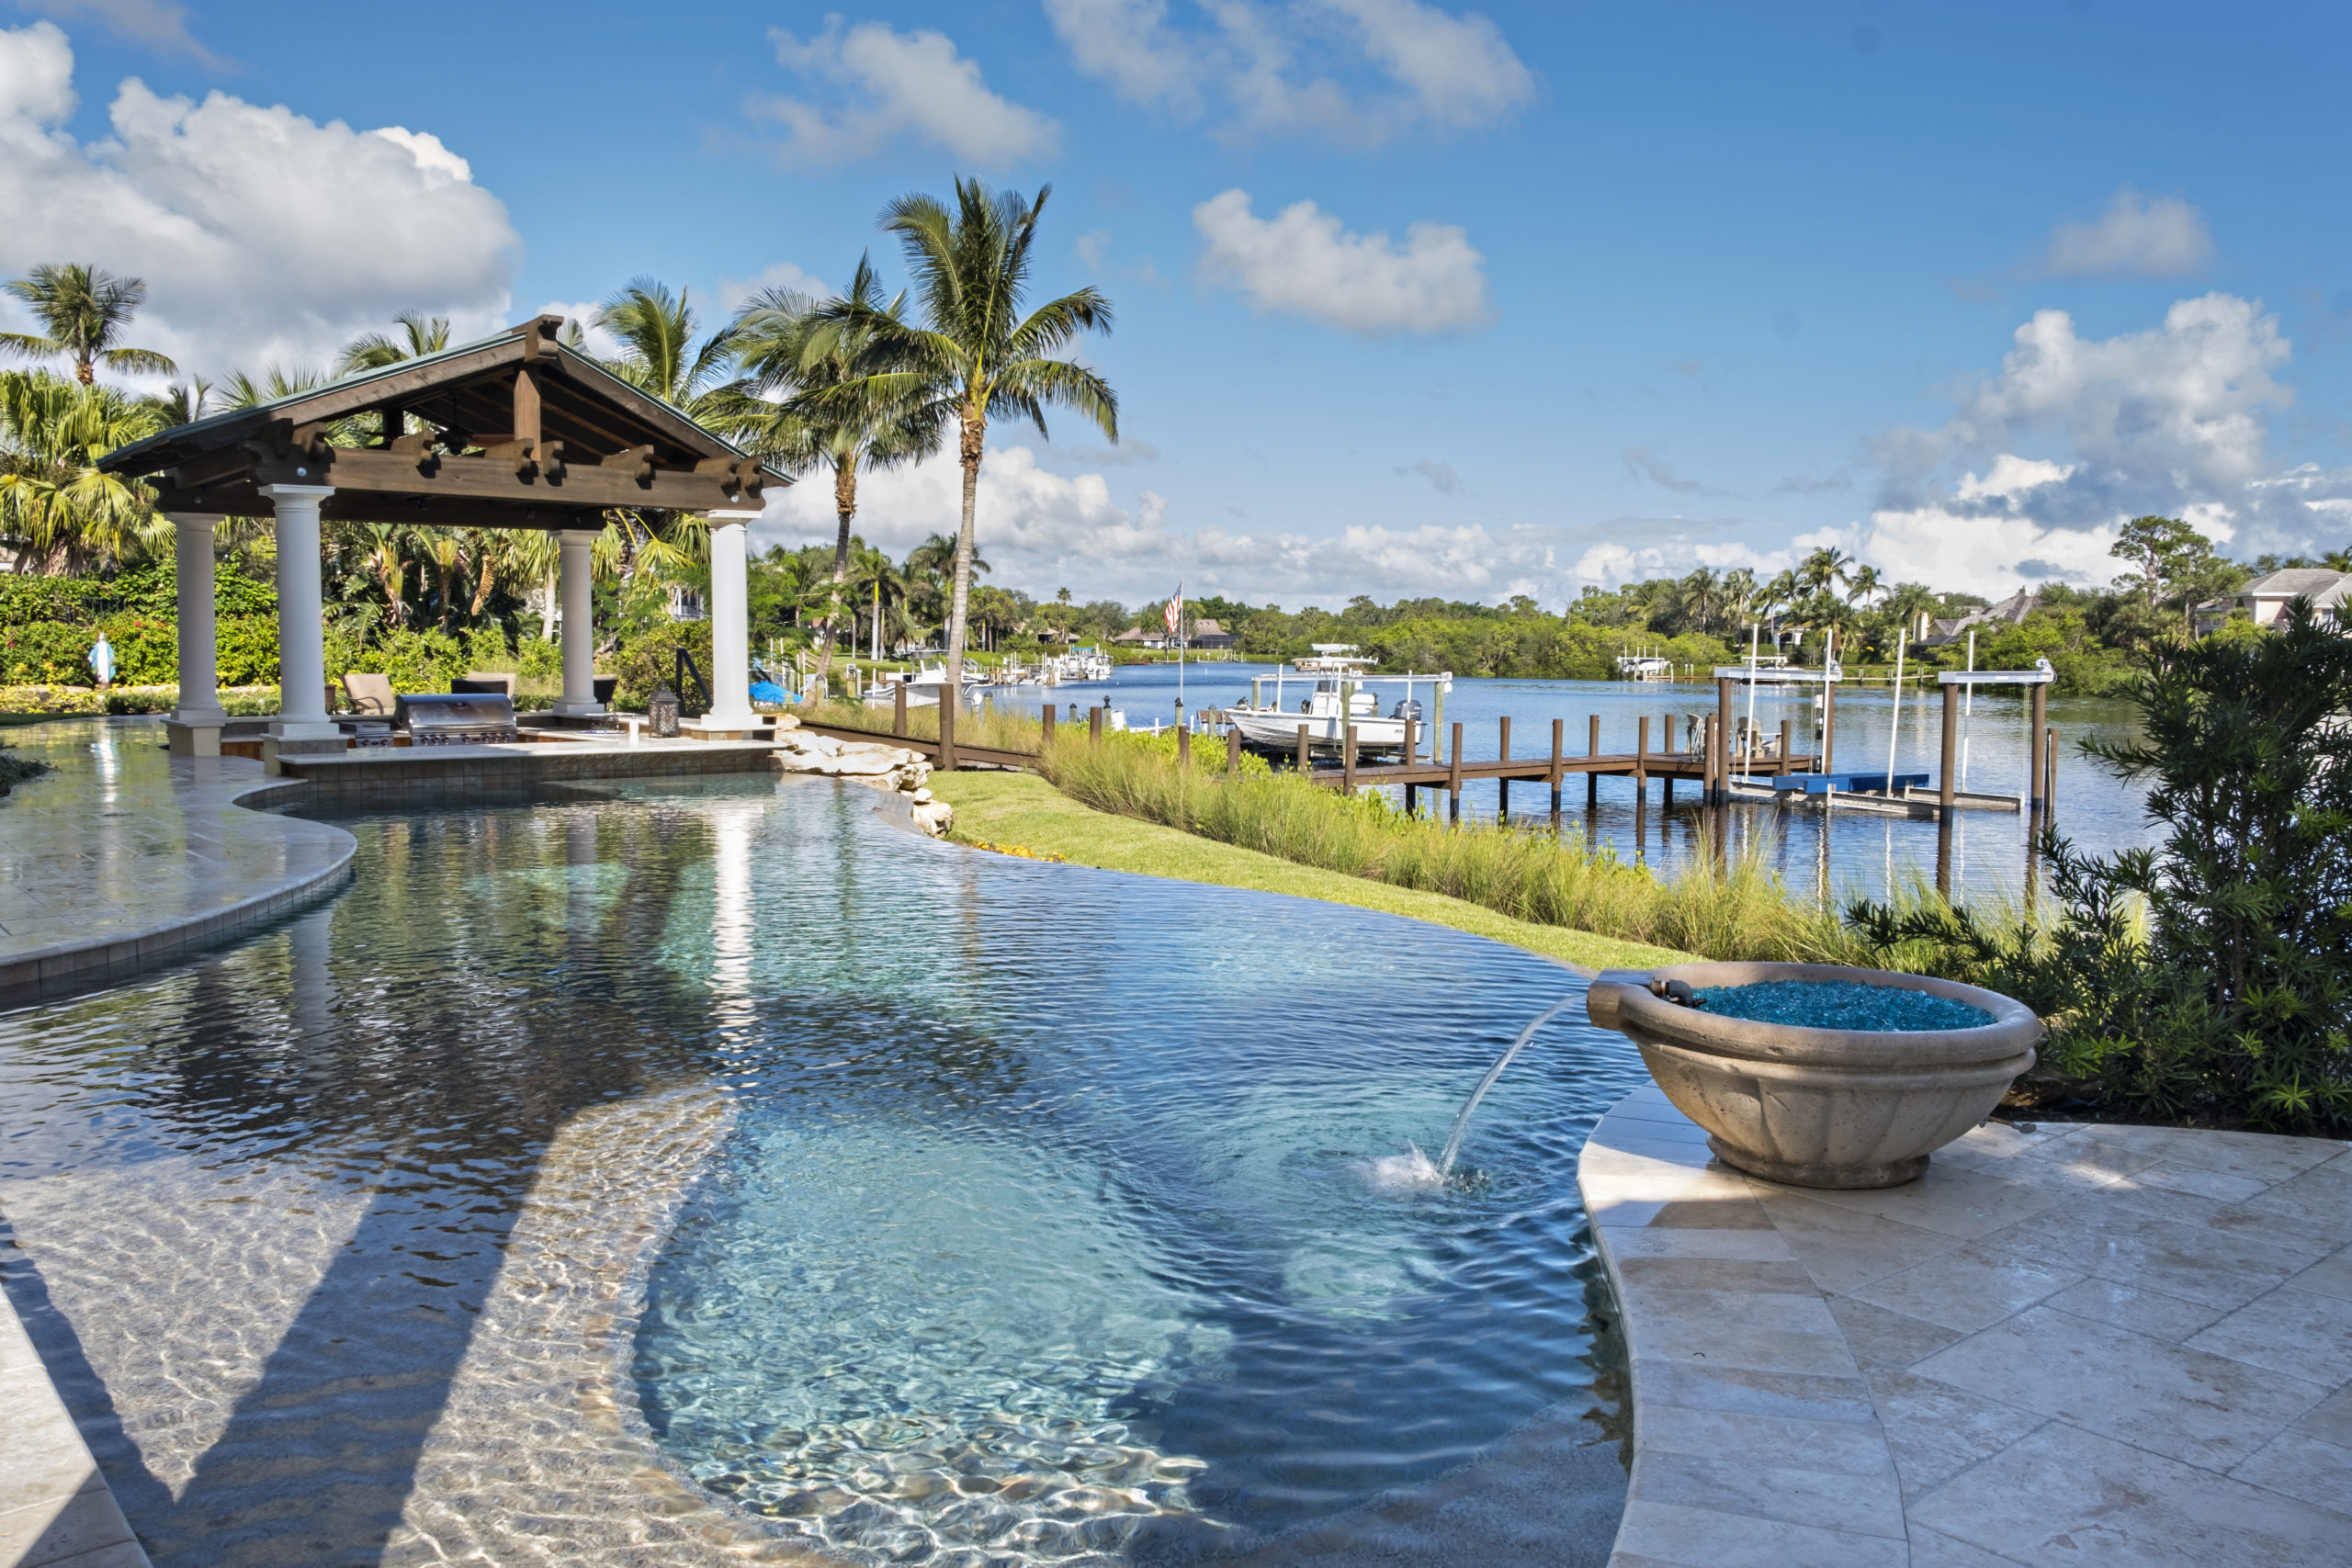 rhr pools of jupiter fl organically shaped pool with water feature overlooking the water